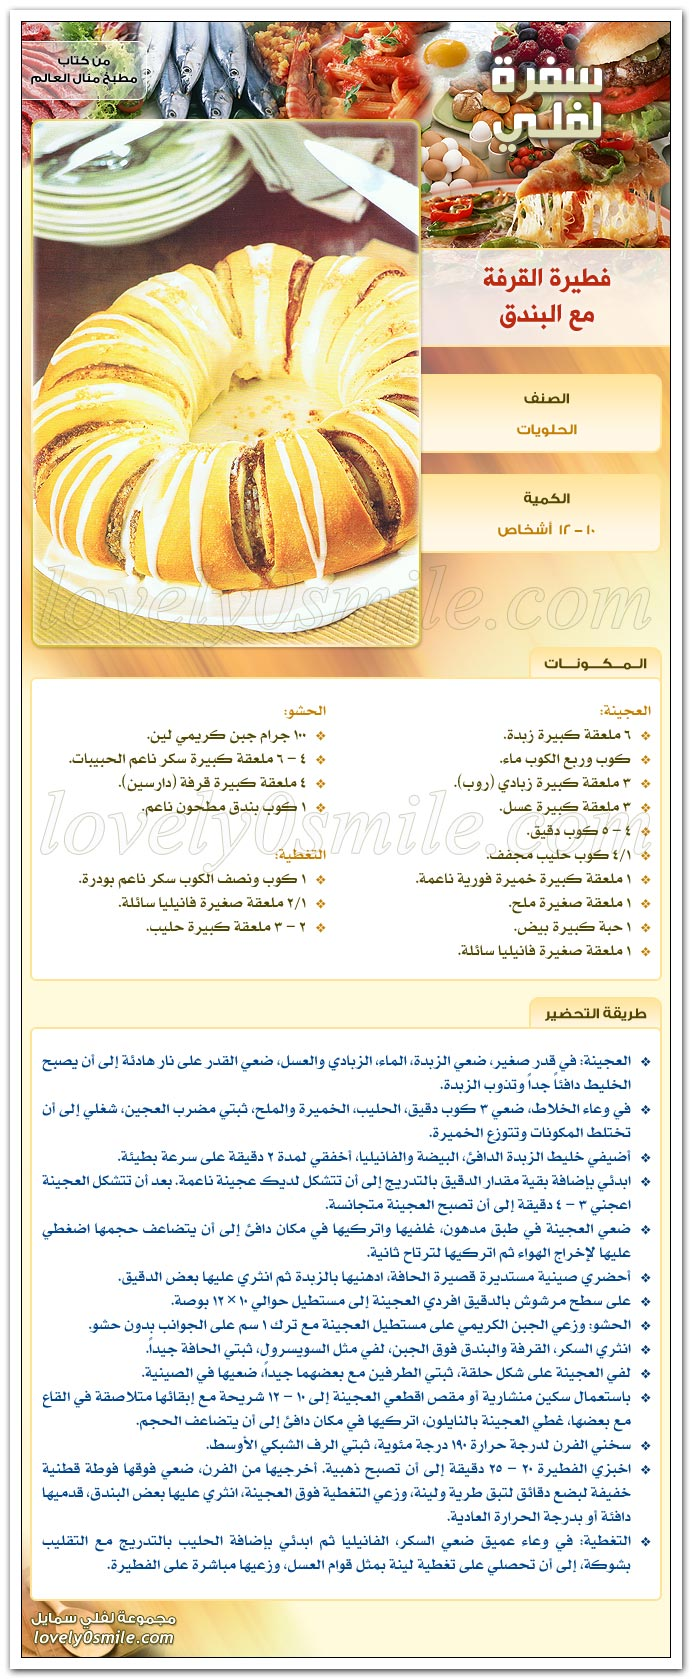 http://www.qassimy.com/up/users/qassimy/manal_alalem_cookbook_recipes_cooking_22.jpg